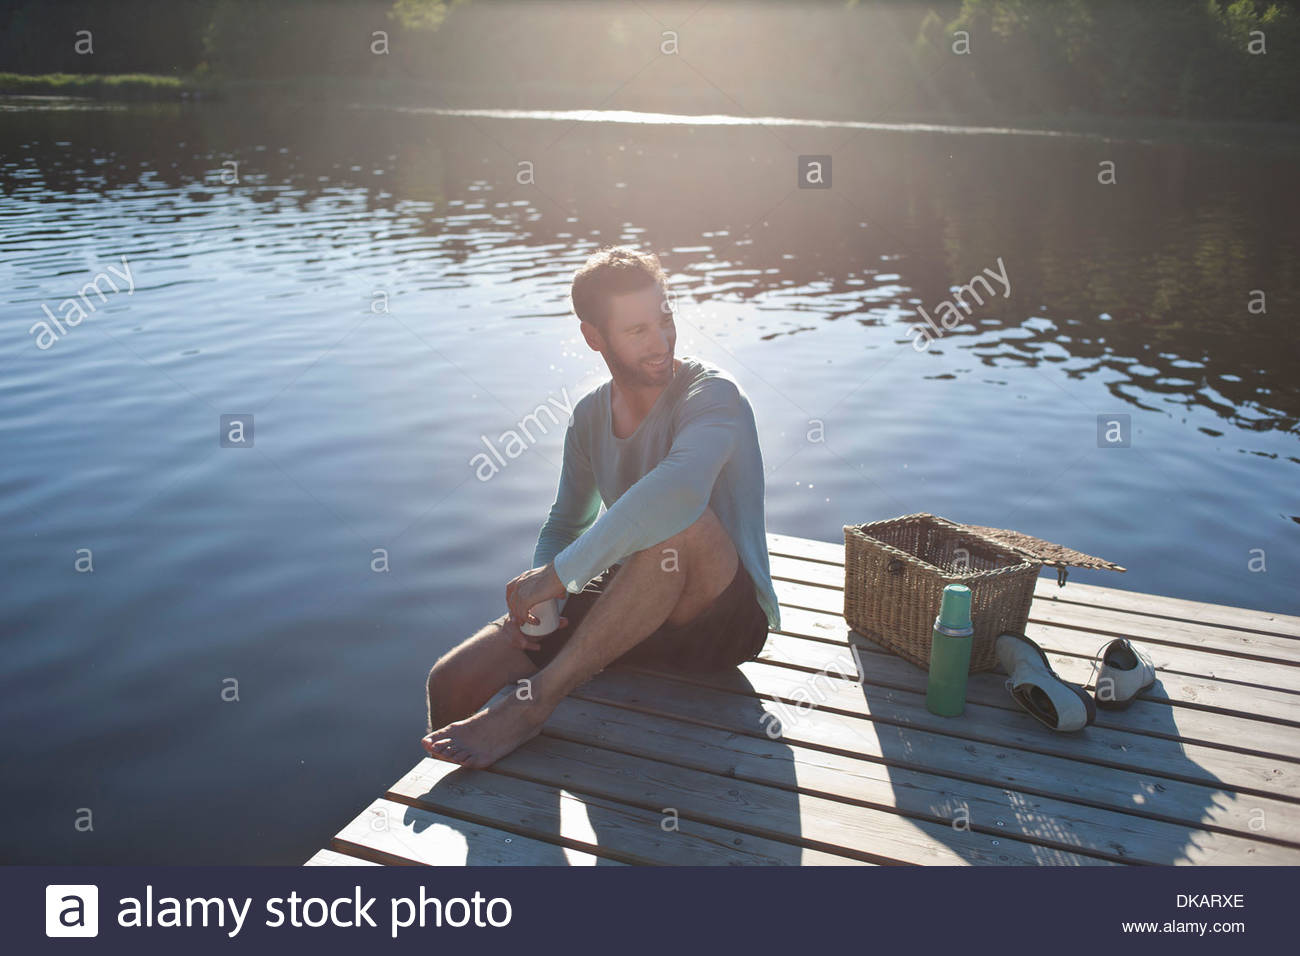 Mature man sitting on decking by lake with picnic hamper - Stock Image